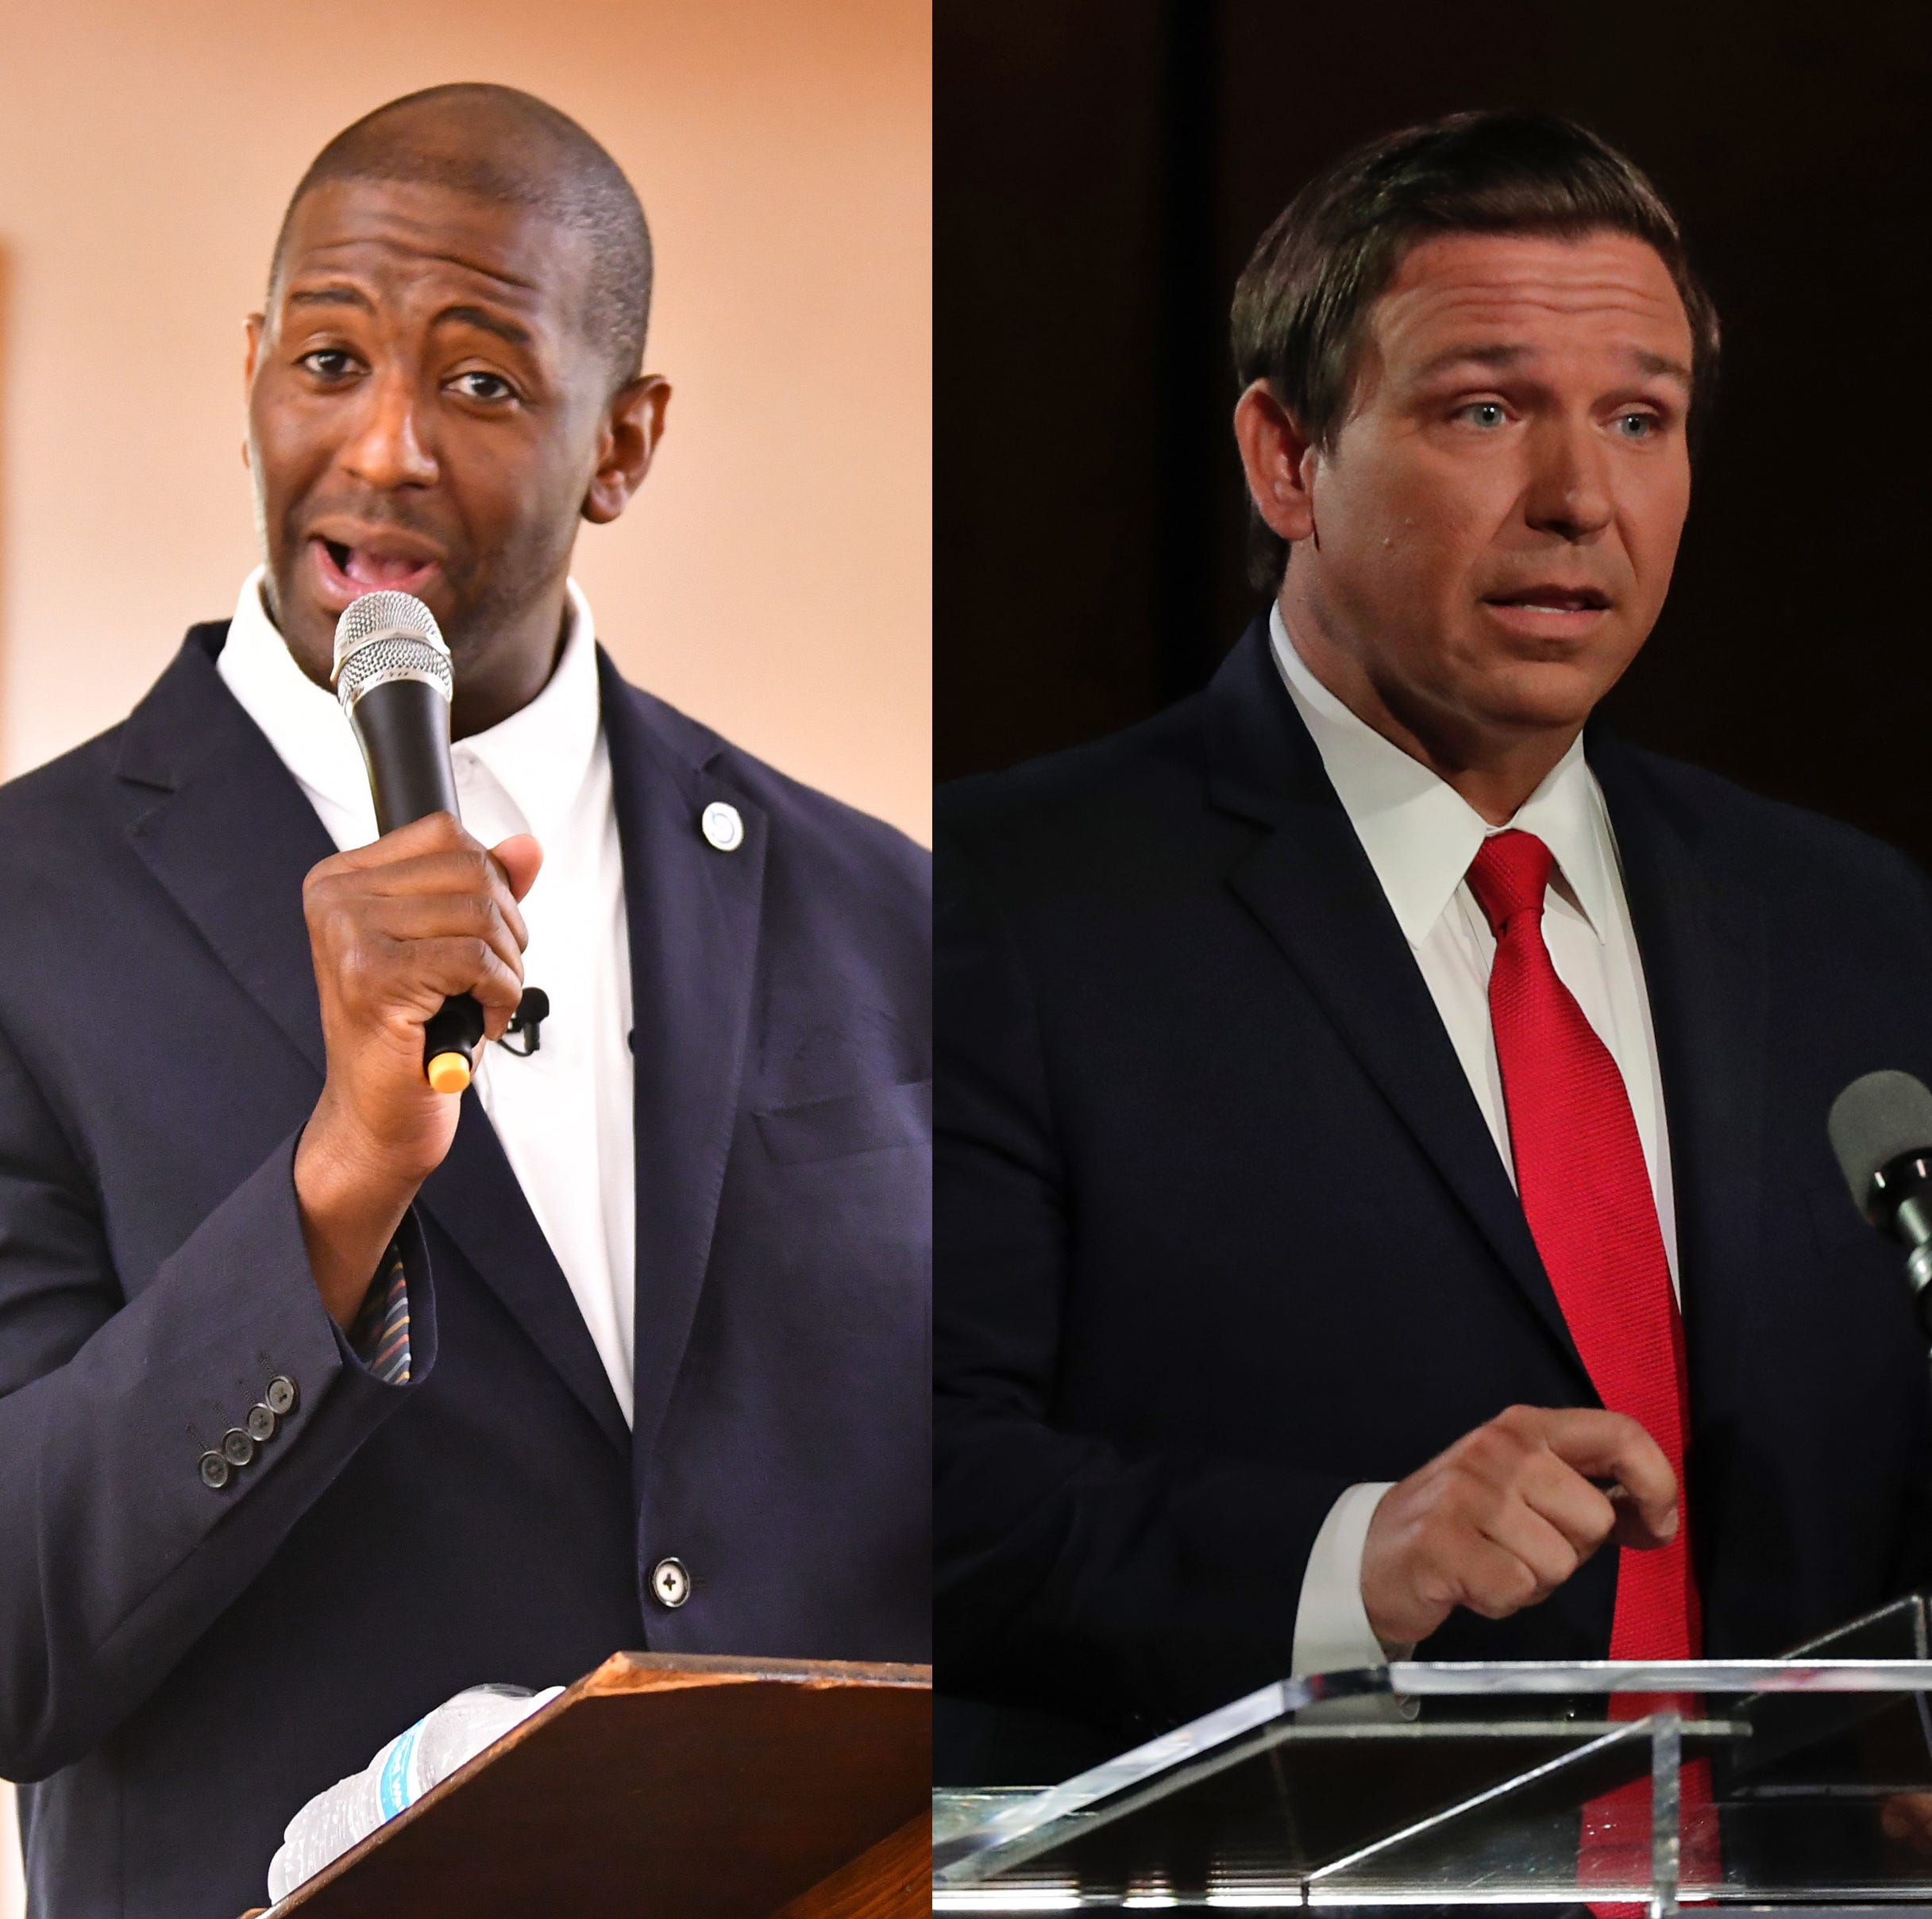 Ron DeSantis and Andrew Gillum clash during Florida governor debate on CNN